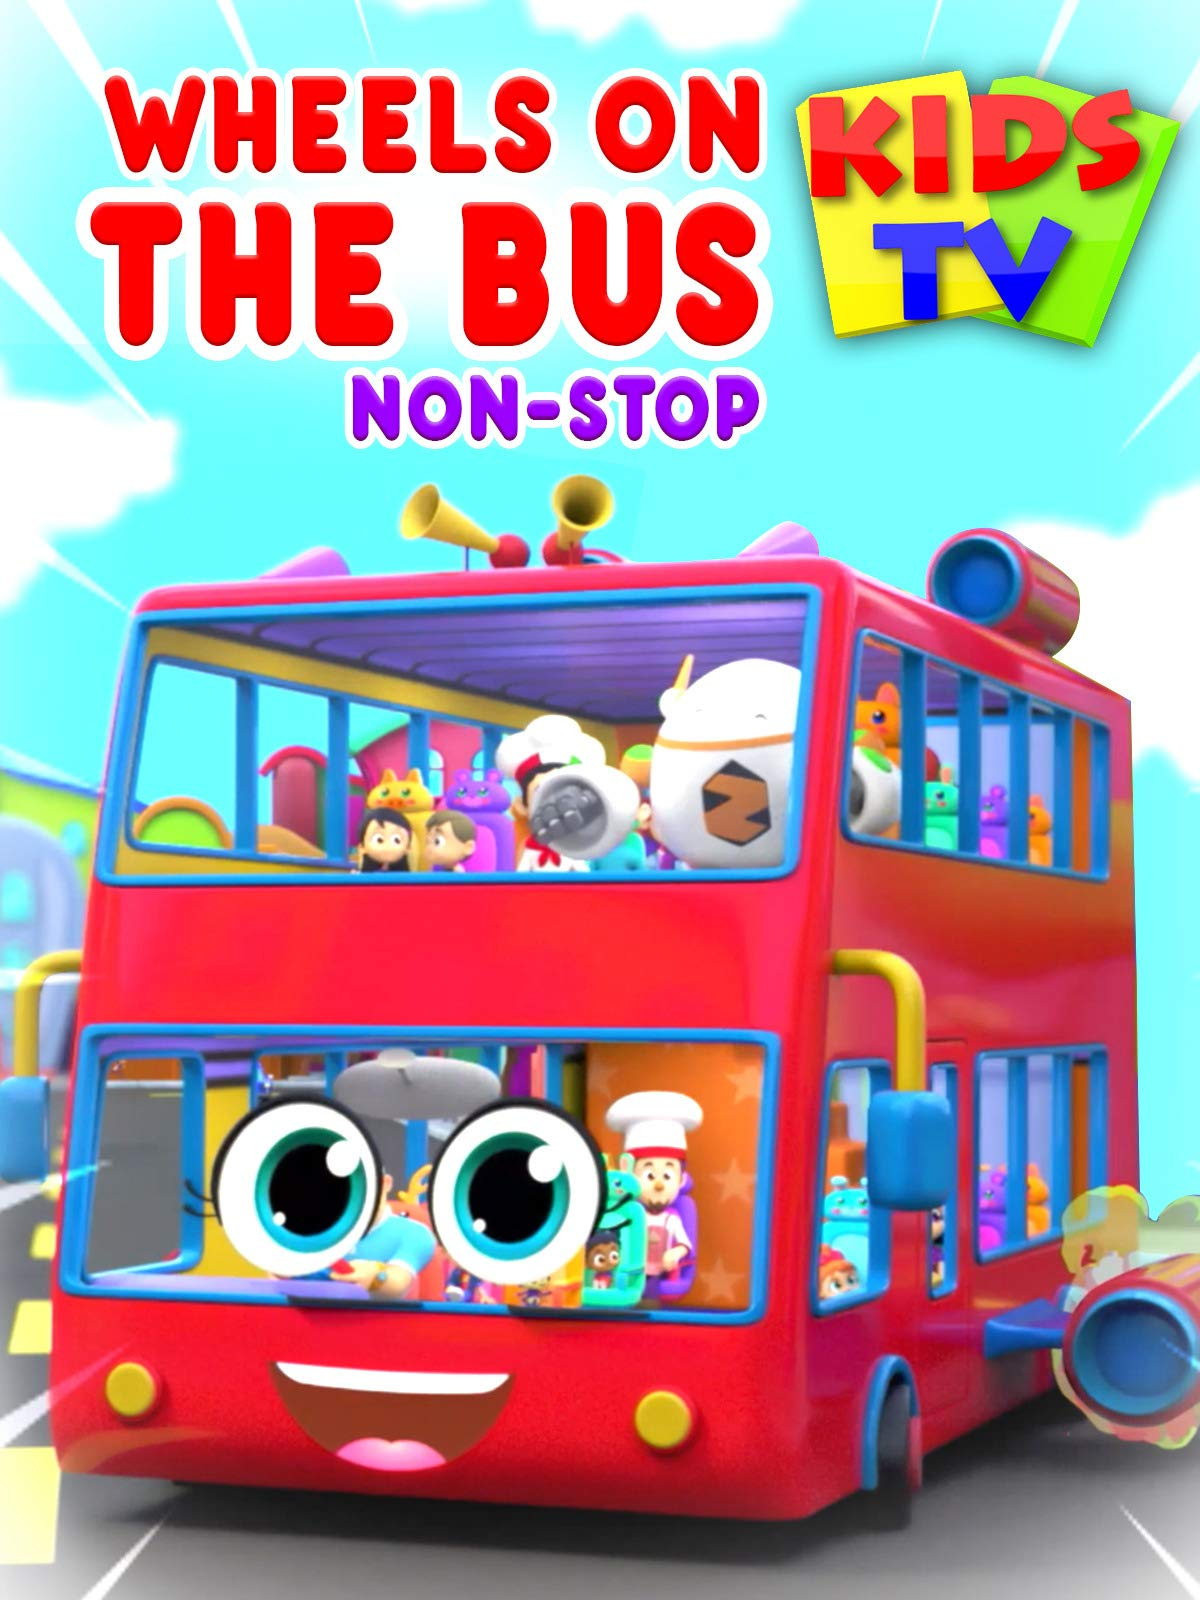 Wheels On The Bus Non-Stop - Kids TV on Amazon Prime Instant Video UK